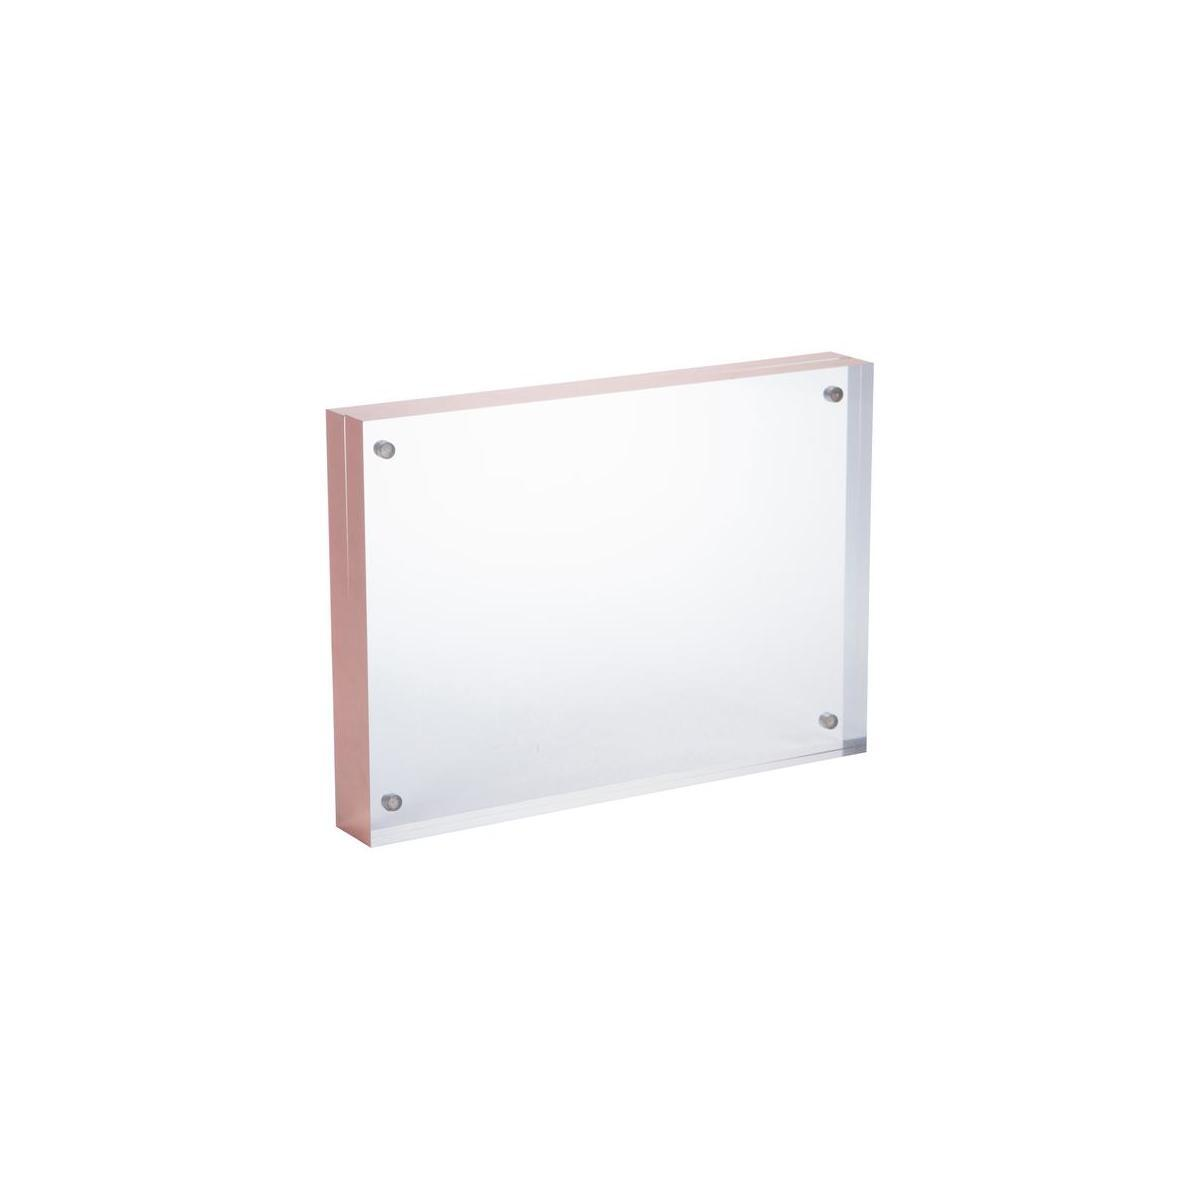 Double sided magnetic picture frame (4